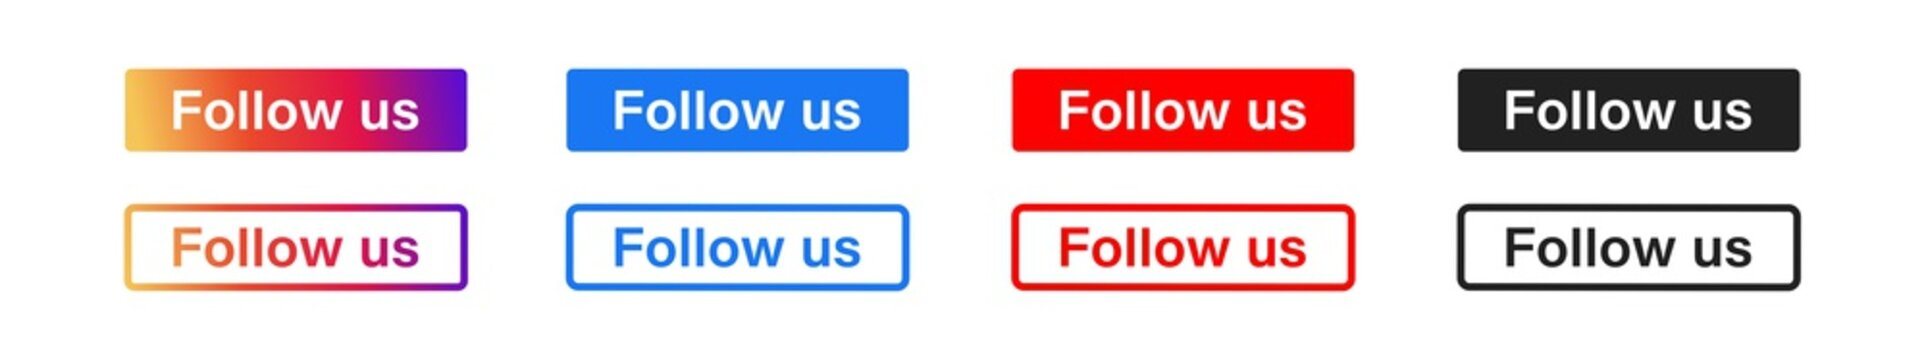 Follow us vector button. Social media network concept. Set icon in flat and gradient style